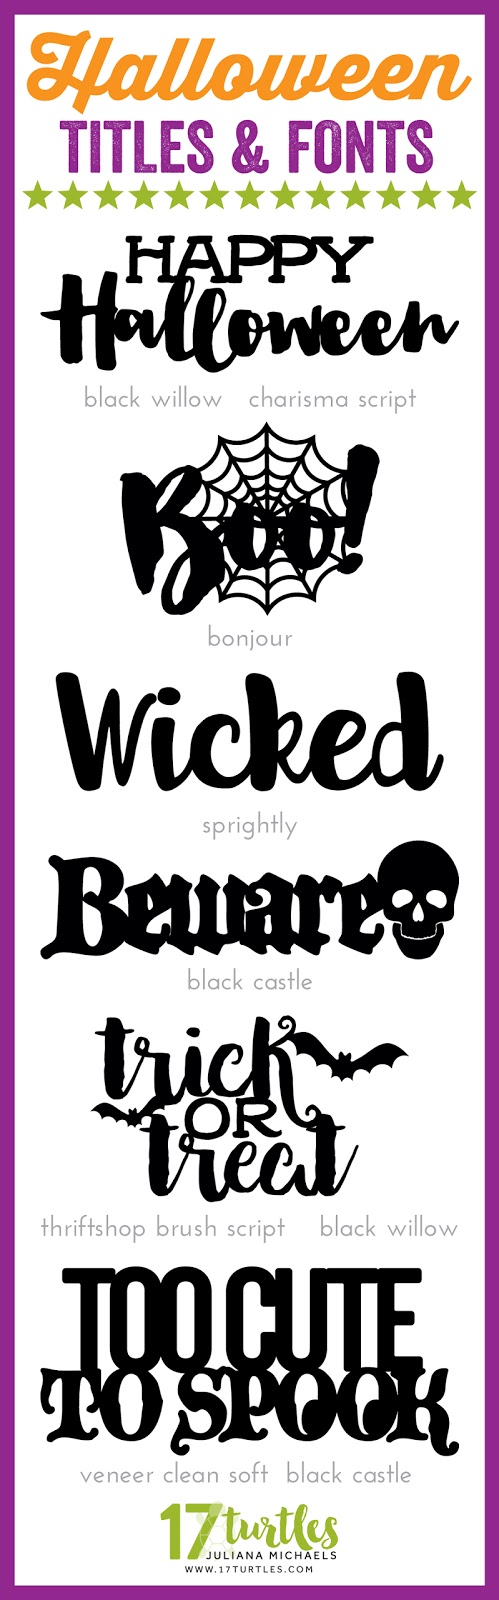 Halloween Titles and Fonts by Juliana Michaels 17turtles